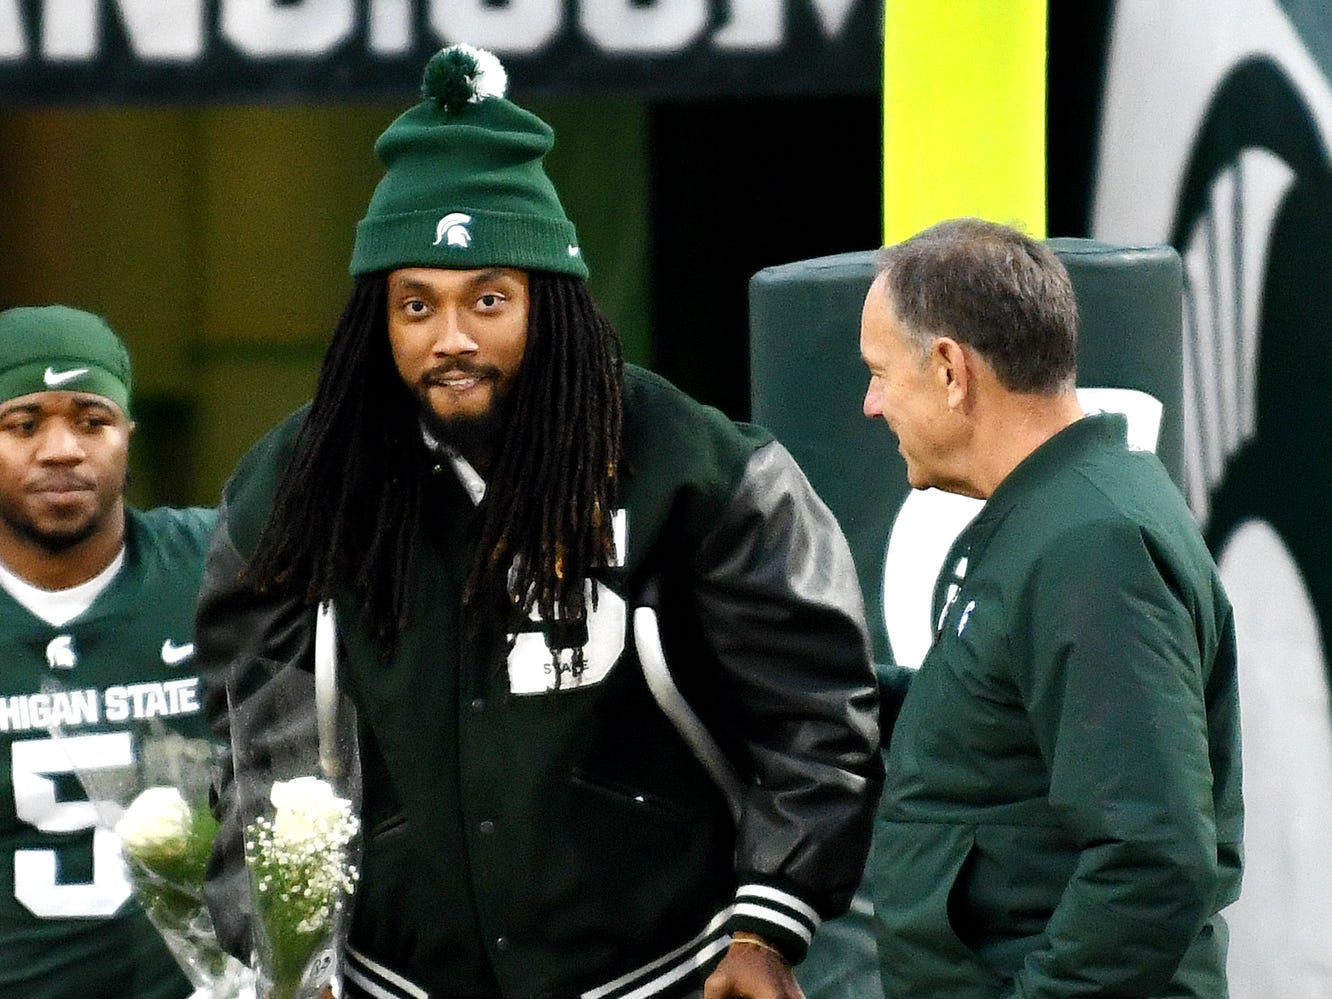 Michigan State senior wideout Felton Davis with head coach Mark Dantonio, as Davis is recognized during a ceremony before the game against Rutgers, Nov. 24, 2018, at Spartan Stadium in East Lansing.